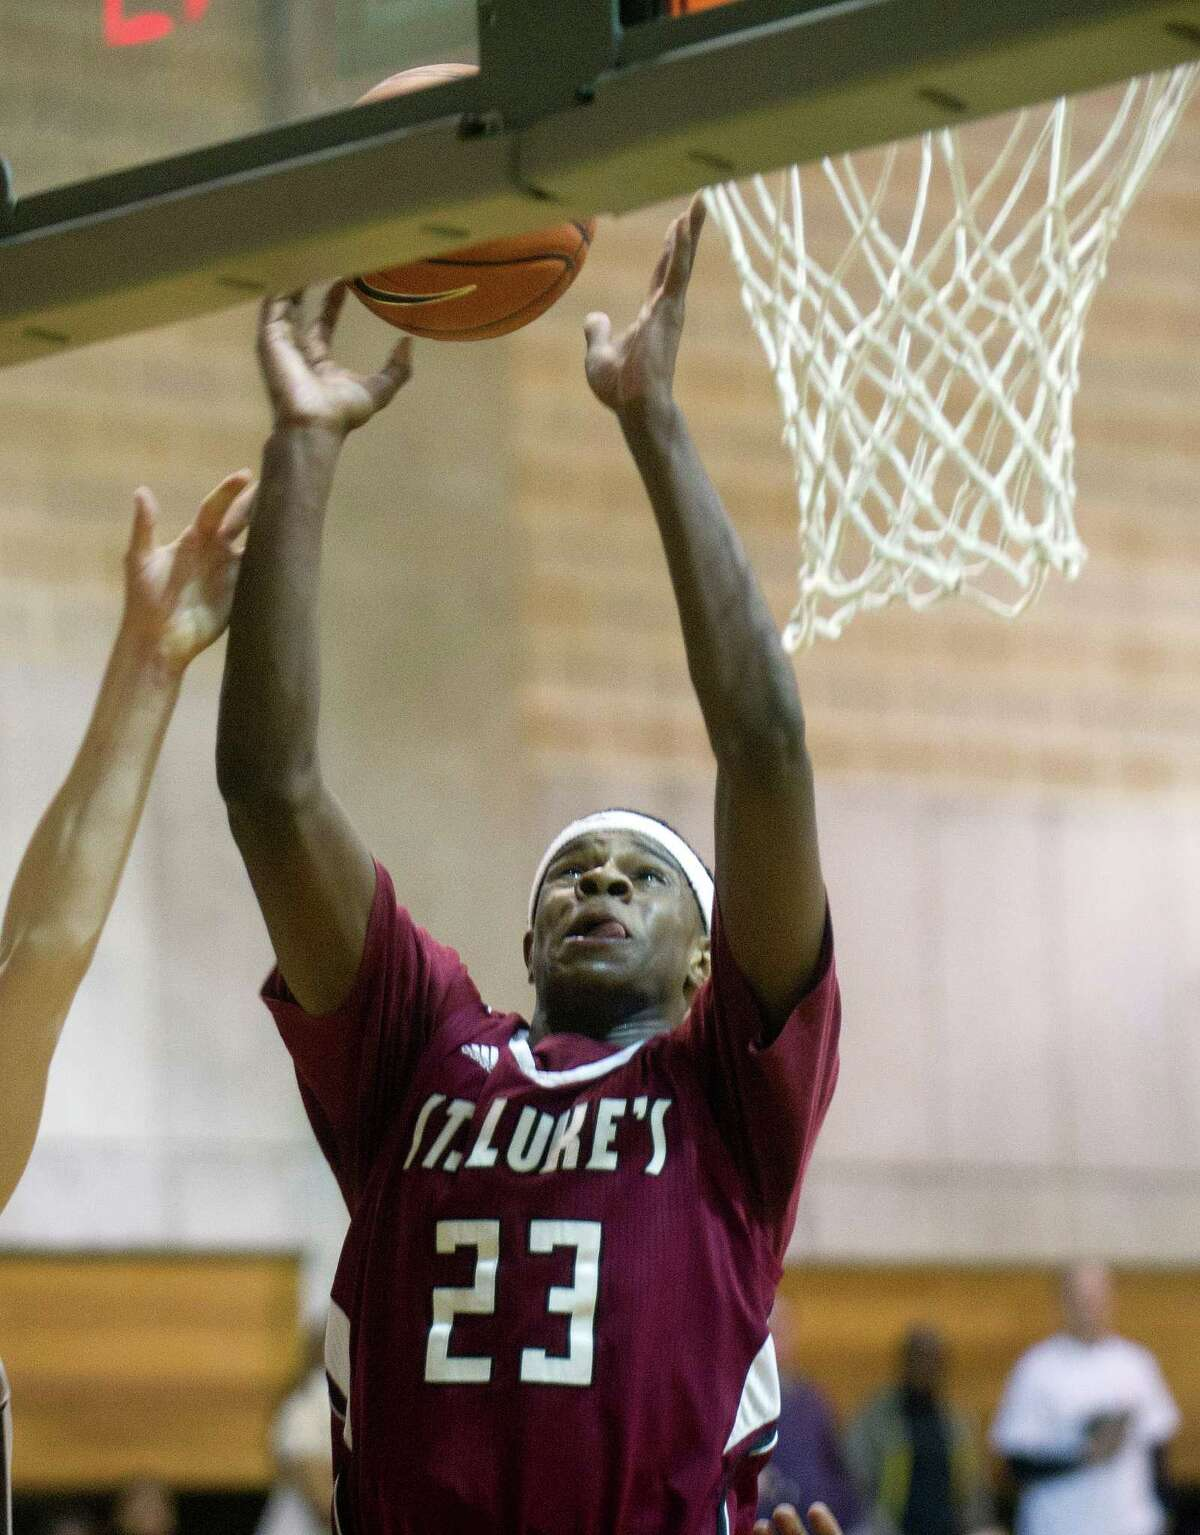 St. Luke's Walter Whyte takes a shot during Friday's basketball game at Brunswick in Greenwich, Conn., on January 16, 2015.